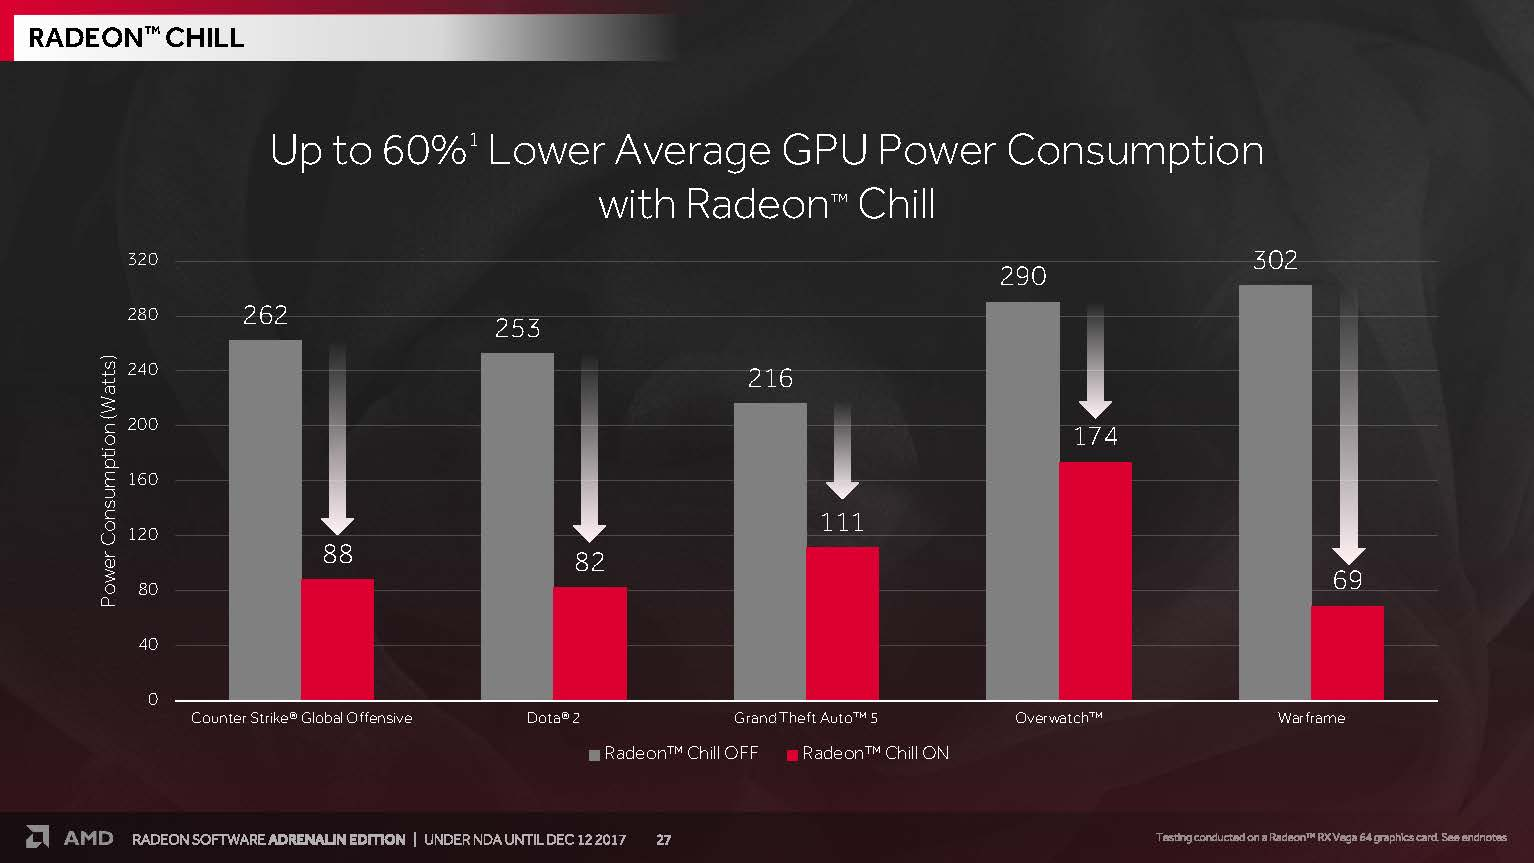 amd radeon software adrenaline edition december press deck Page 27